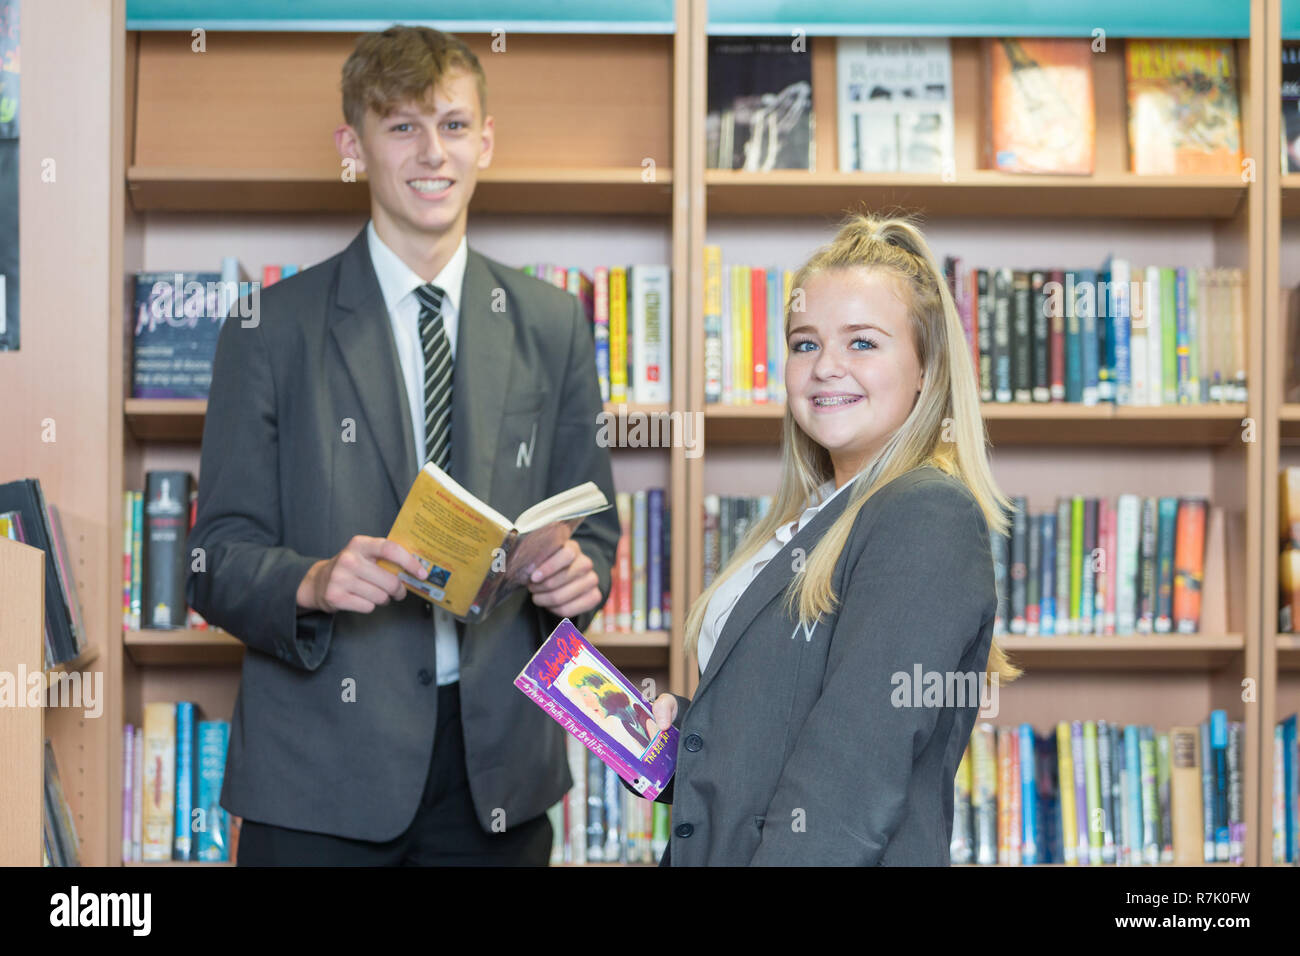 Two teenaged school pupils in a British UK school library - Stock Image